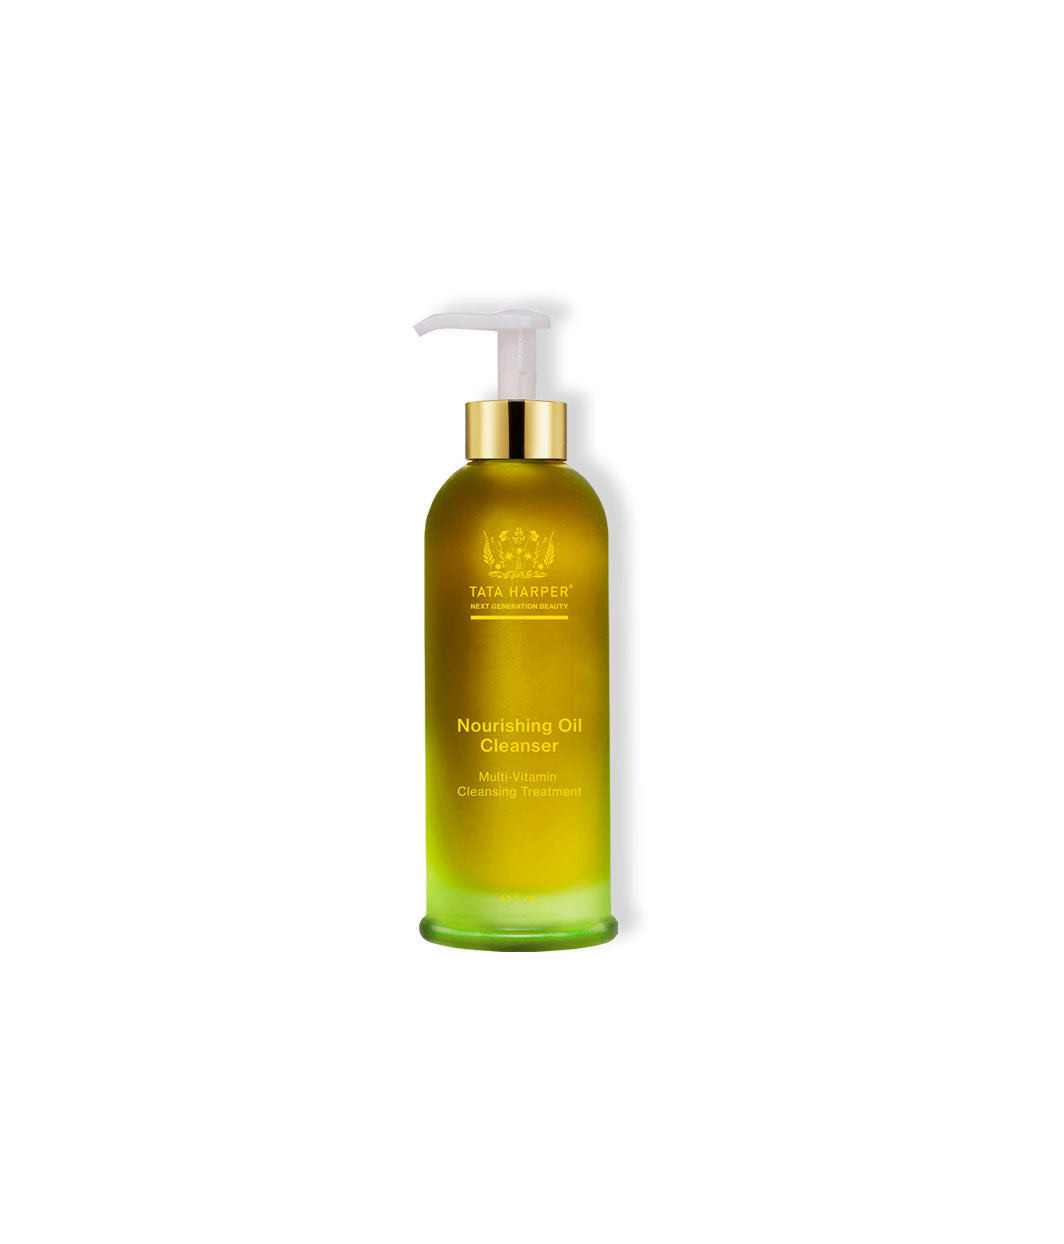 Nourishing Cleansing Oil - LEMON LAINE - Cleansers - Tata Harper